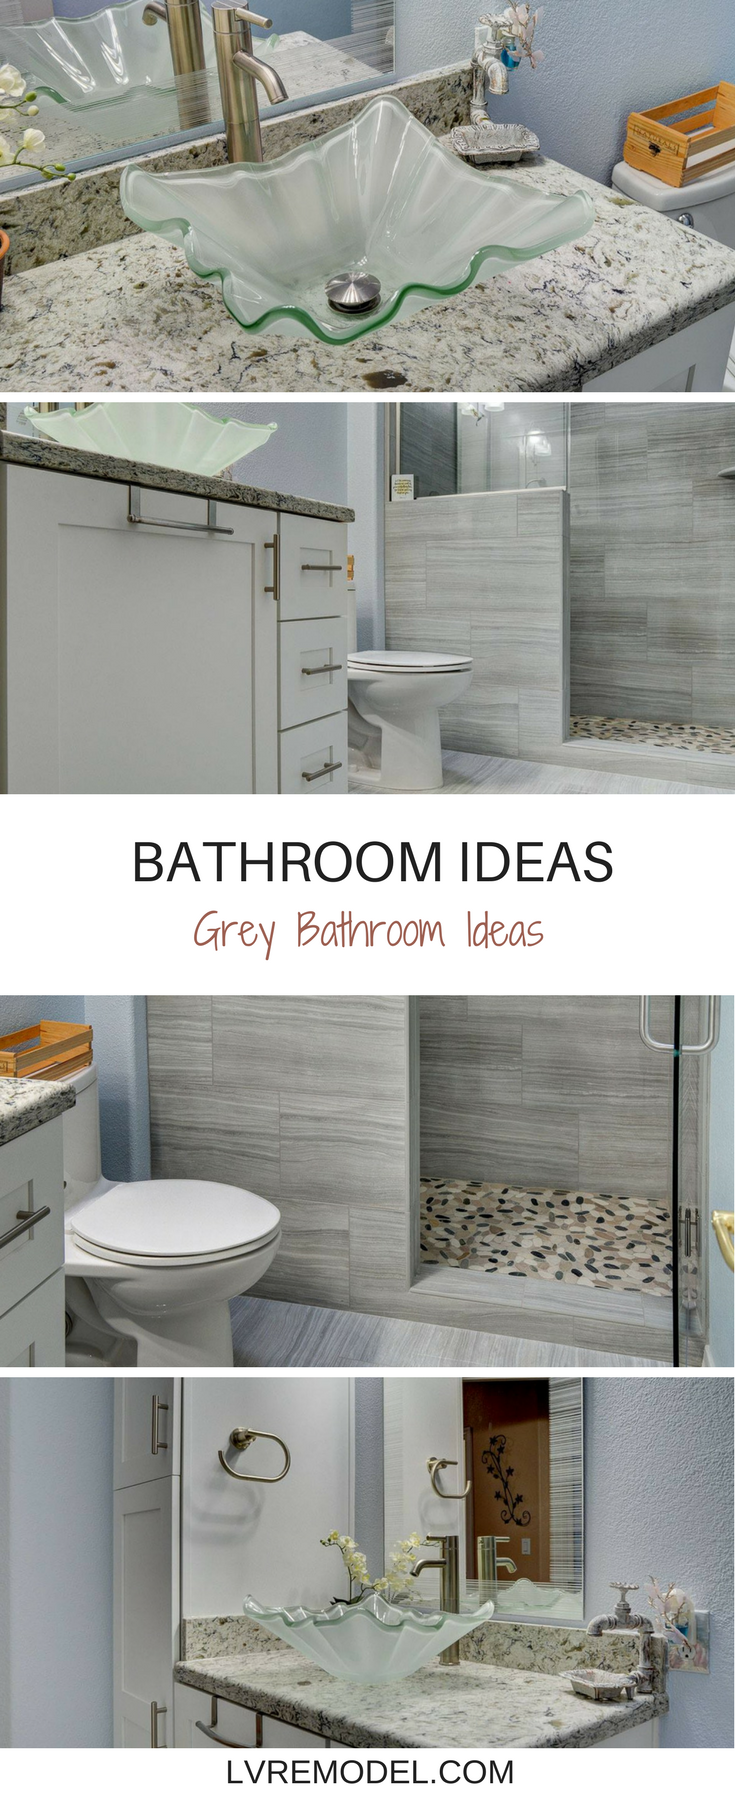 Design And Build Your Dream Kitchen Bathrooms Remodel Remodel